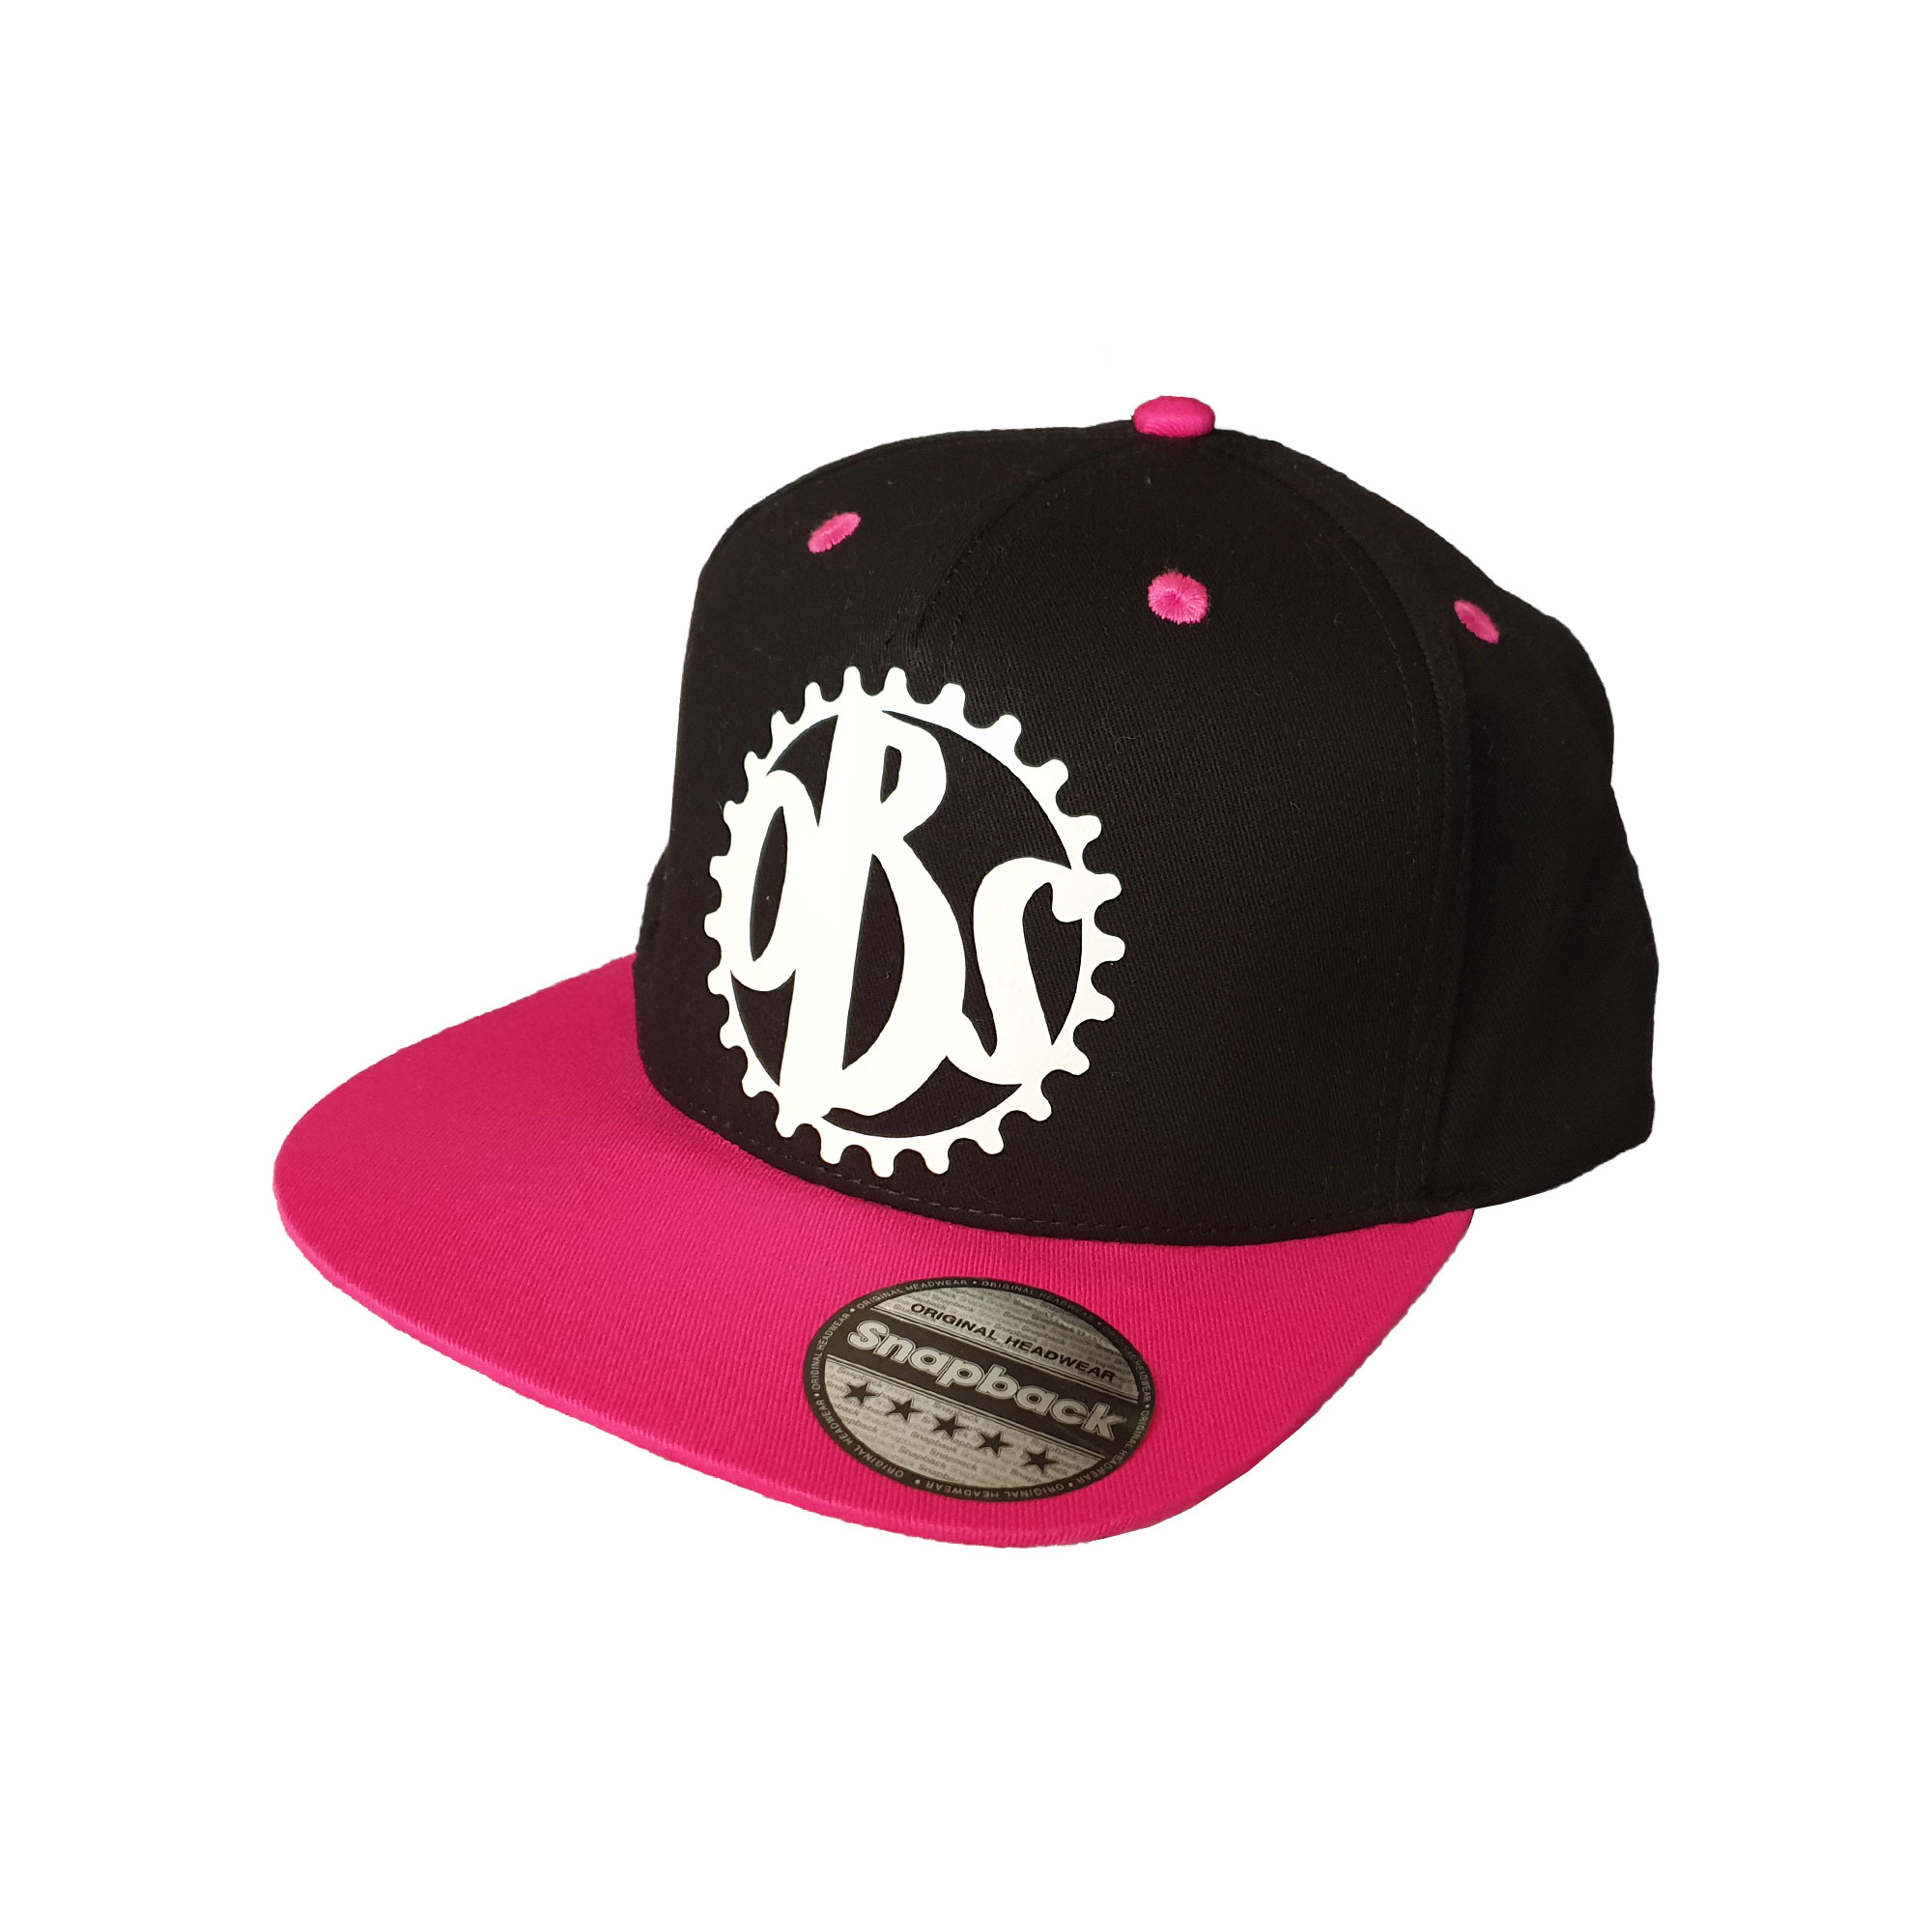 Cappellino Obsession Bmx Store - Colore Pink